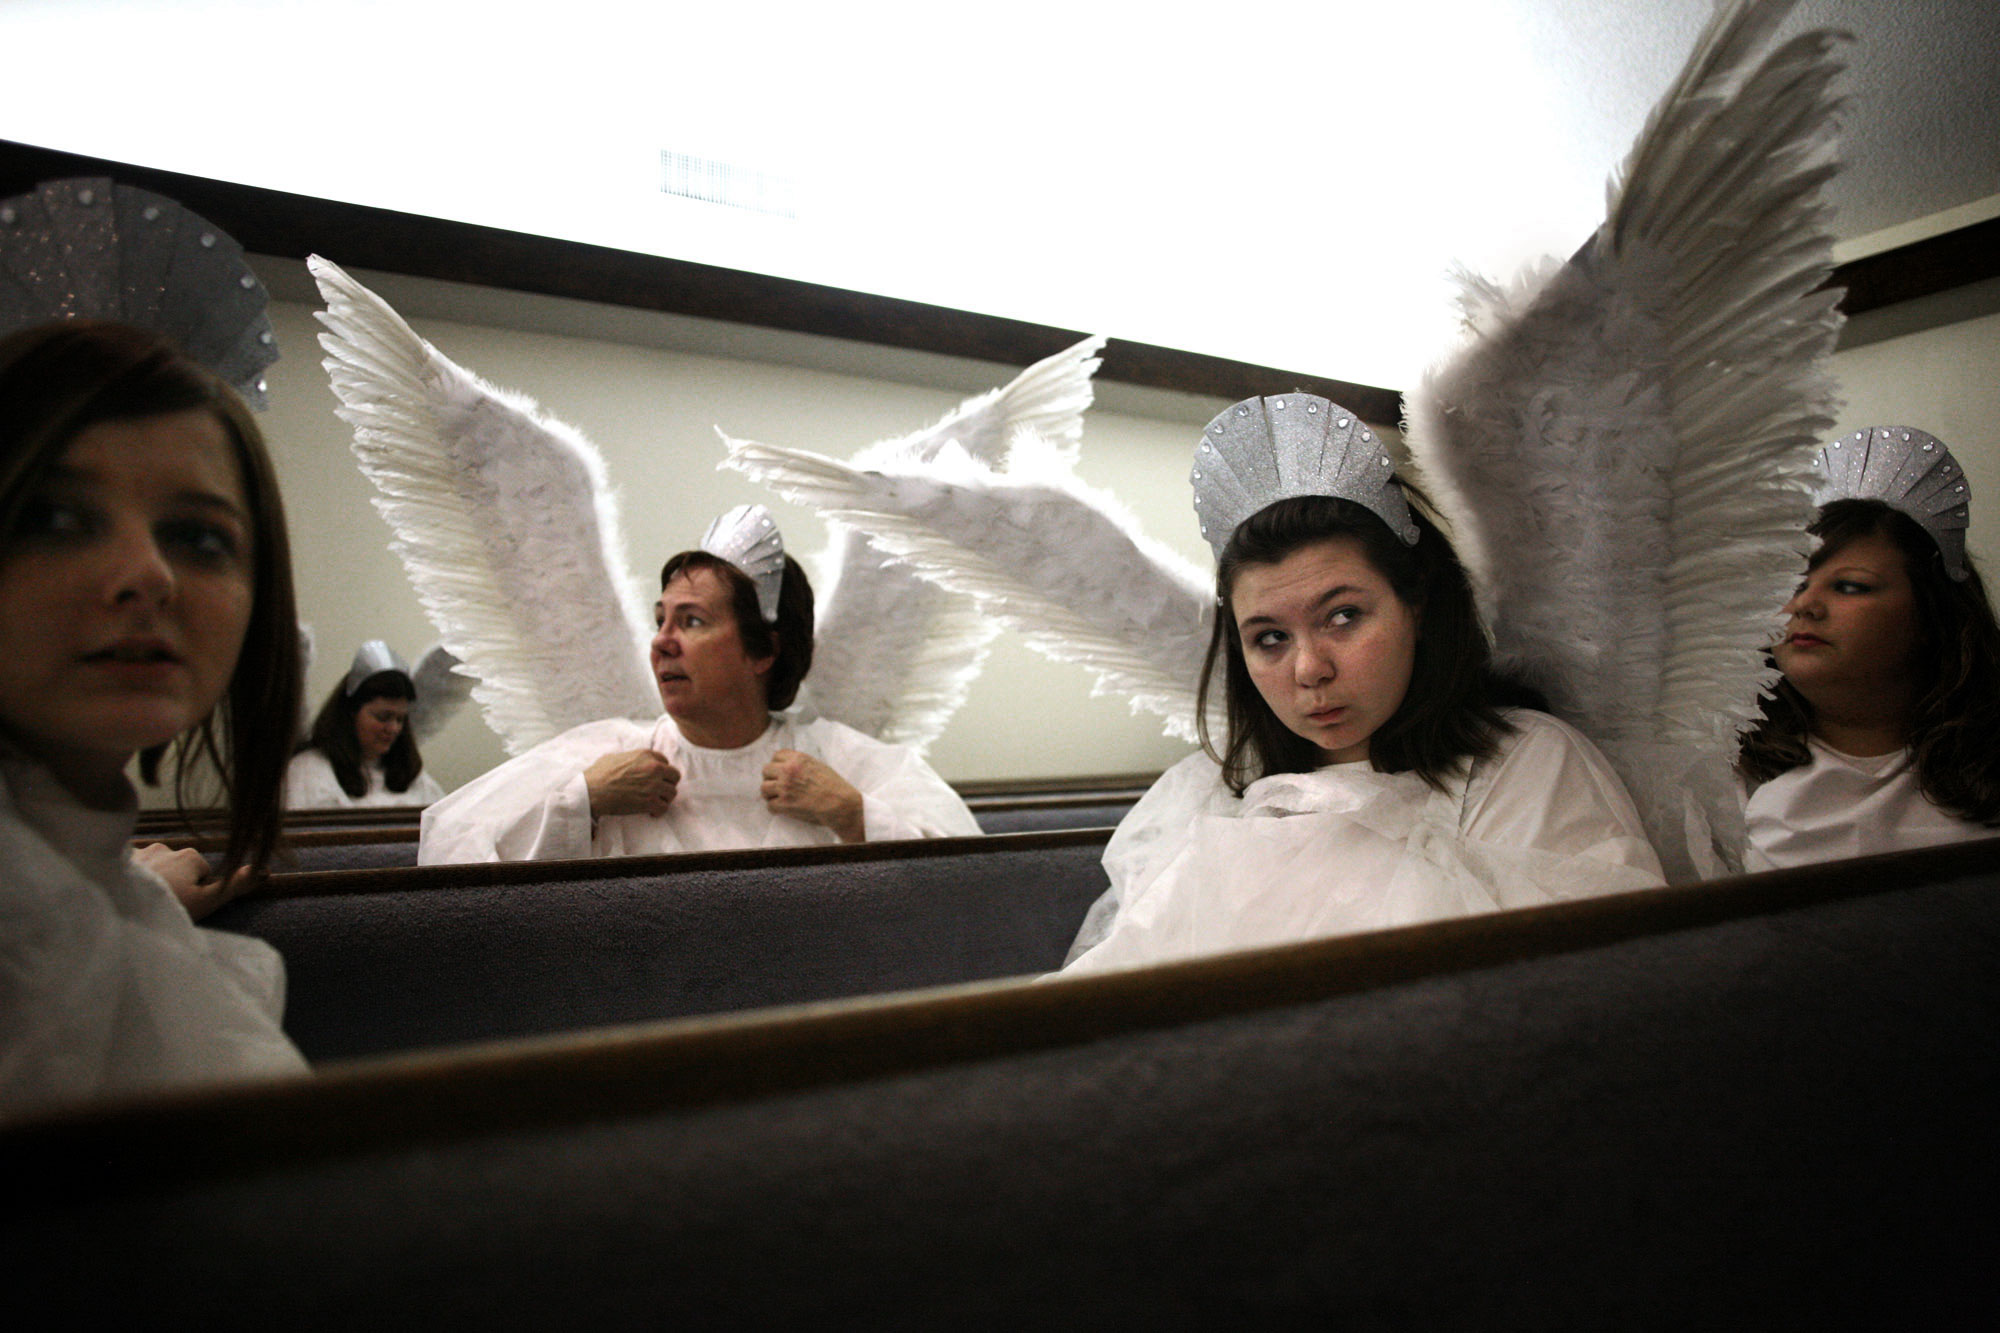 (l-r)Arynne Grove, 13, Jean Albertson, 58, Tori Albertson, 12 and Leahann Holloway, 13,  wait before their turn to take the stage at West Park Church of Christ on Wednesday, March 24, 2010 during the Passion 2010 {quote}My Redeemer Lives!{quote}. The four were playing the part of angels.